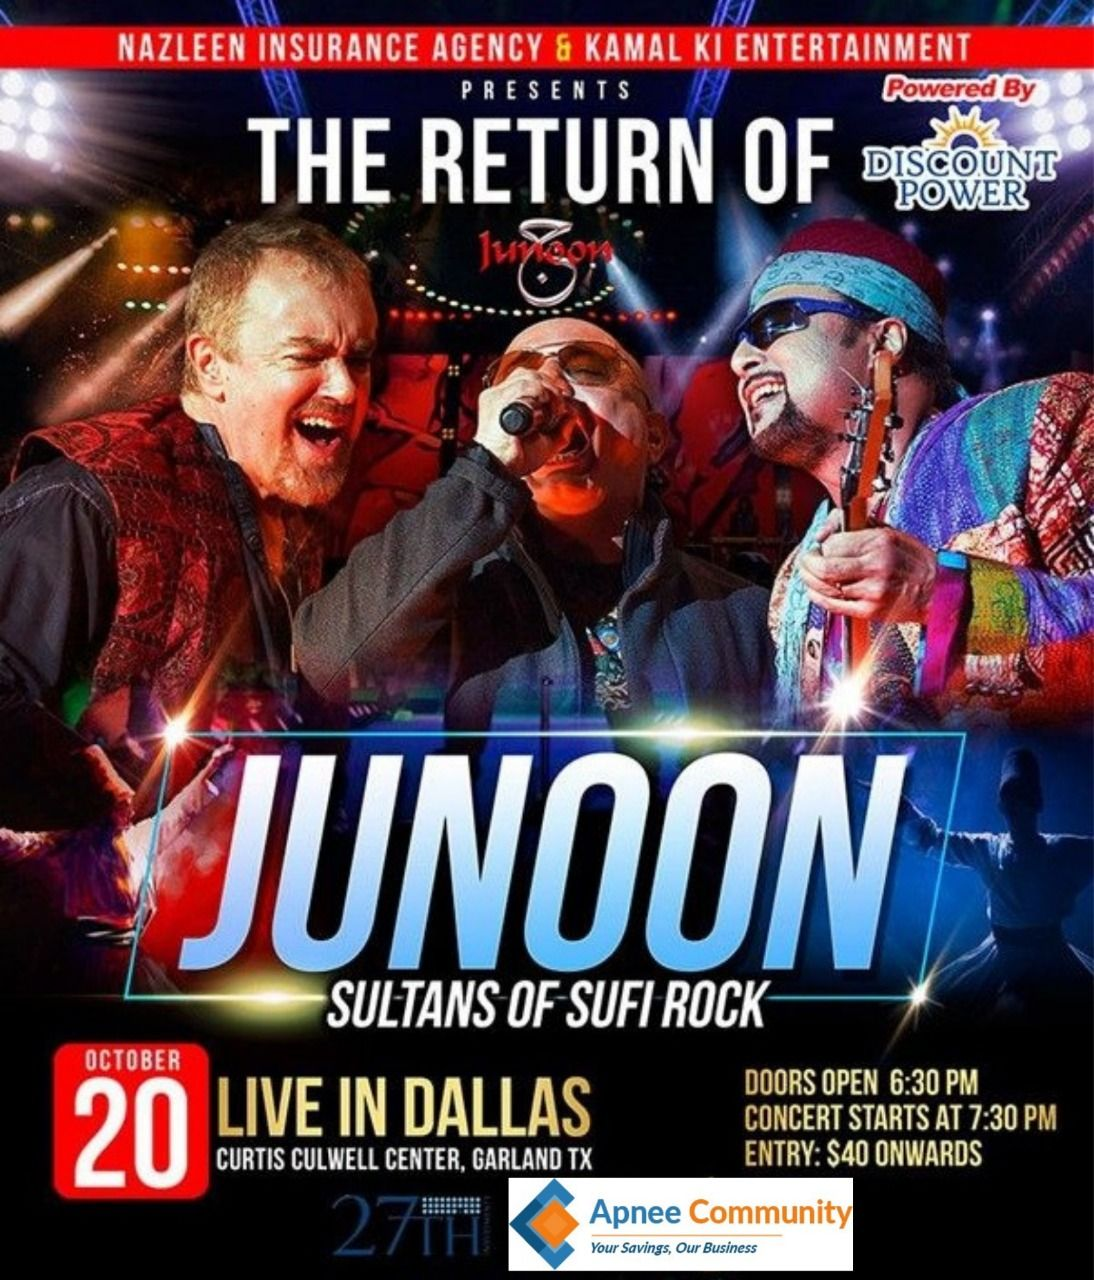 Junoon Live in Concert – Dallas (The Sultans of Sufi Rock Return!)